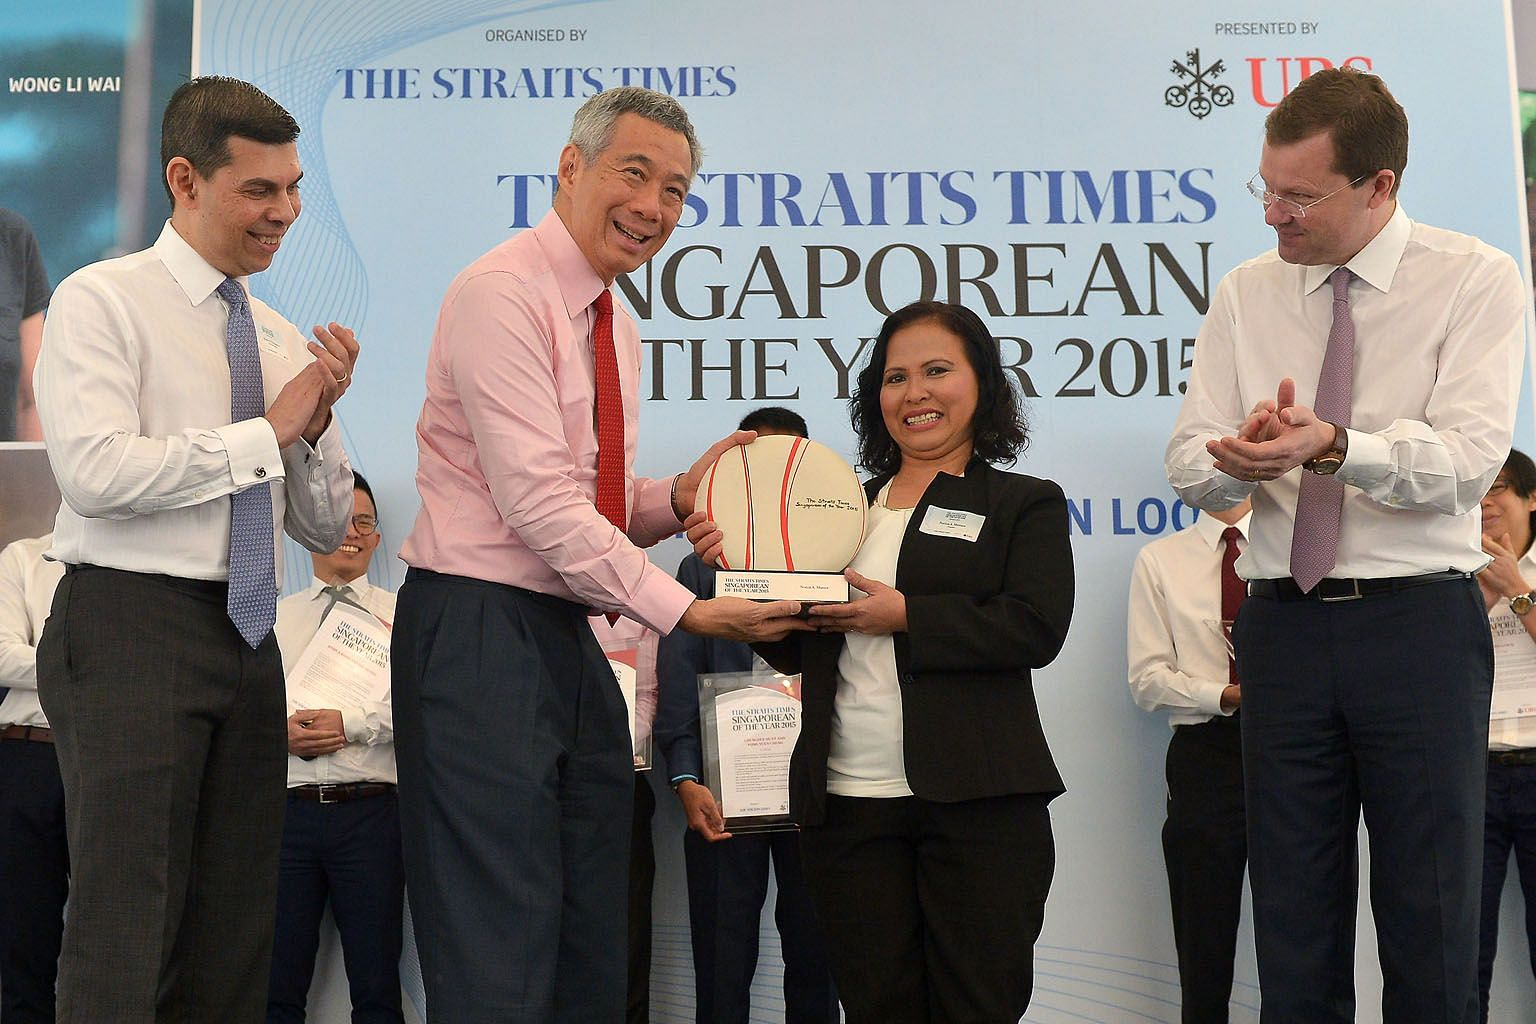 PM Lee presenting Madam Noriza with the Singaporean of the Year trophy at the UBS Business University yesterday. With them are Straits Times Editor Warren Fernandez (left) and Mr Juerg Zeltner, president of UBS Wealth Management. Madam Noriza hopes h